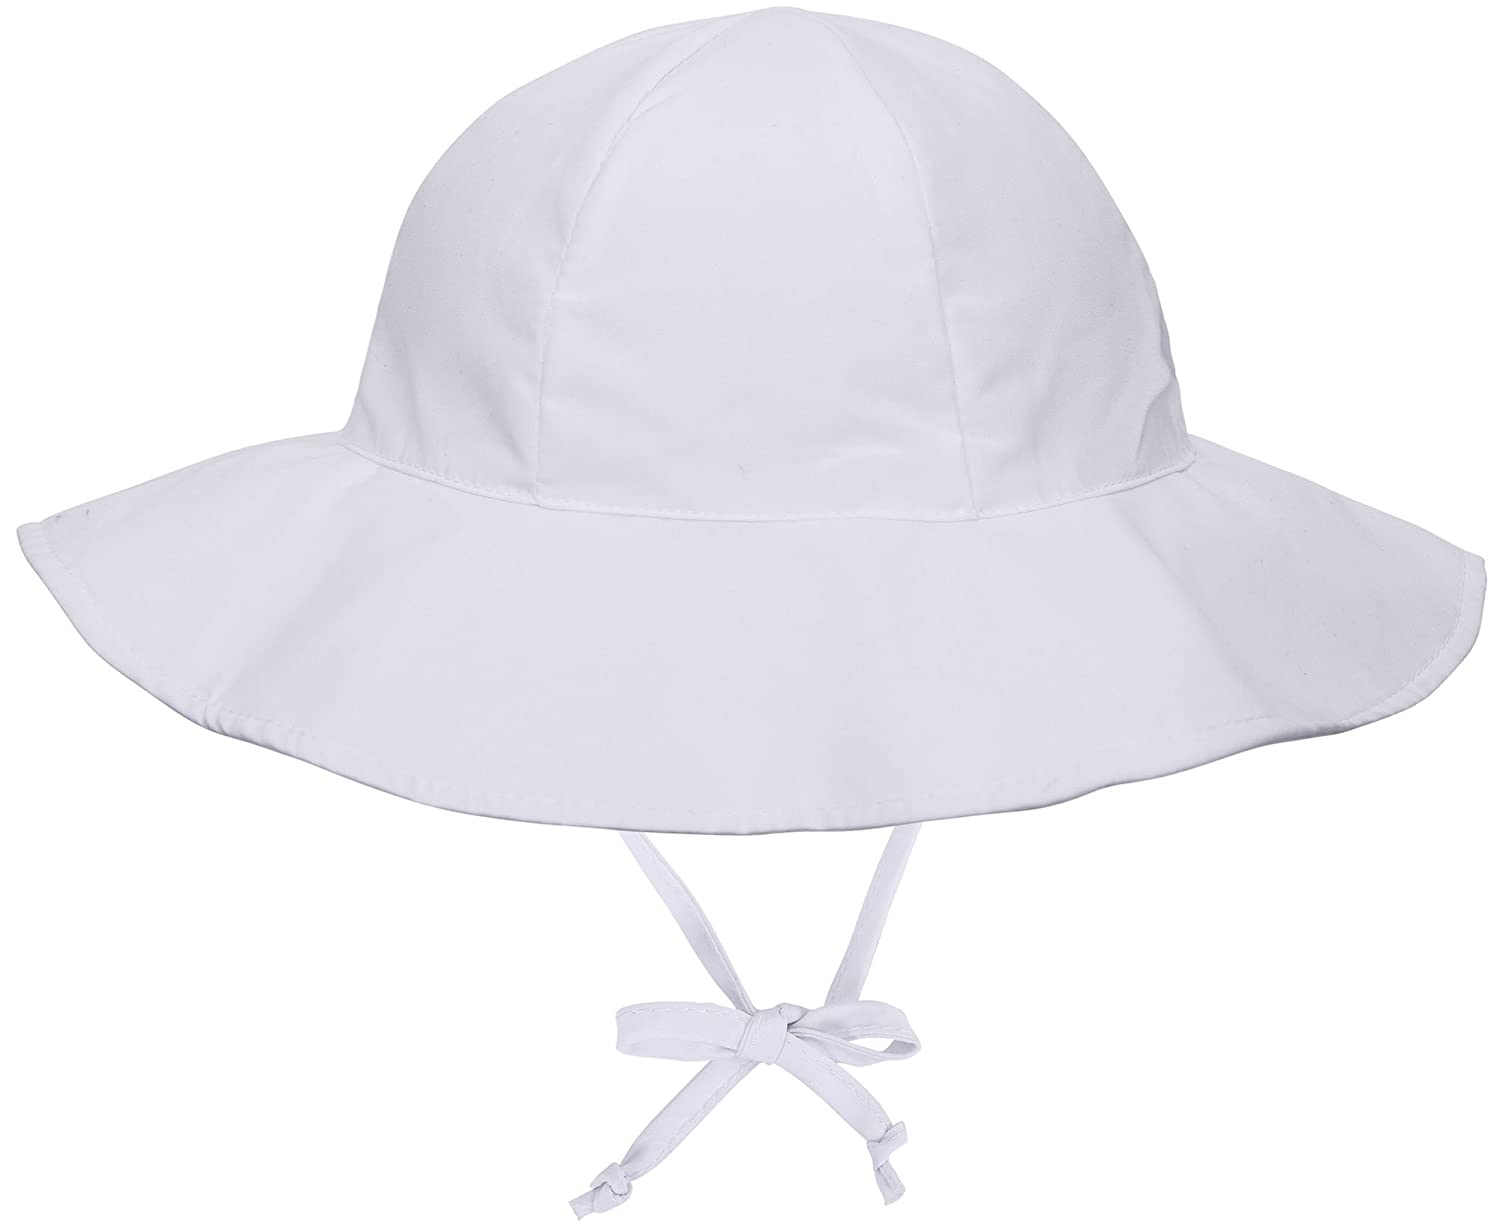 Amazon.com  SimpliKids UPF 50+ UV Ray Sun Protection Wide Brim Baby Sun Hat   Clothing e7dfd62d479